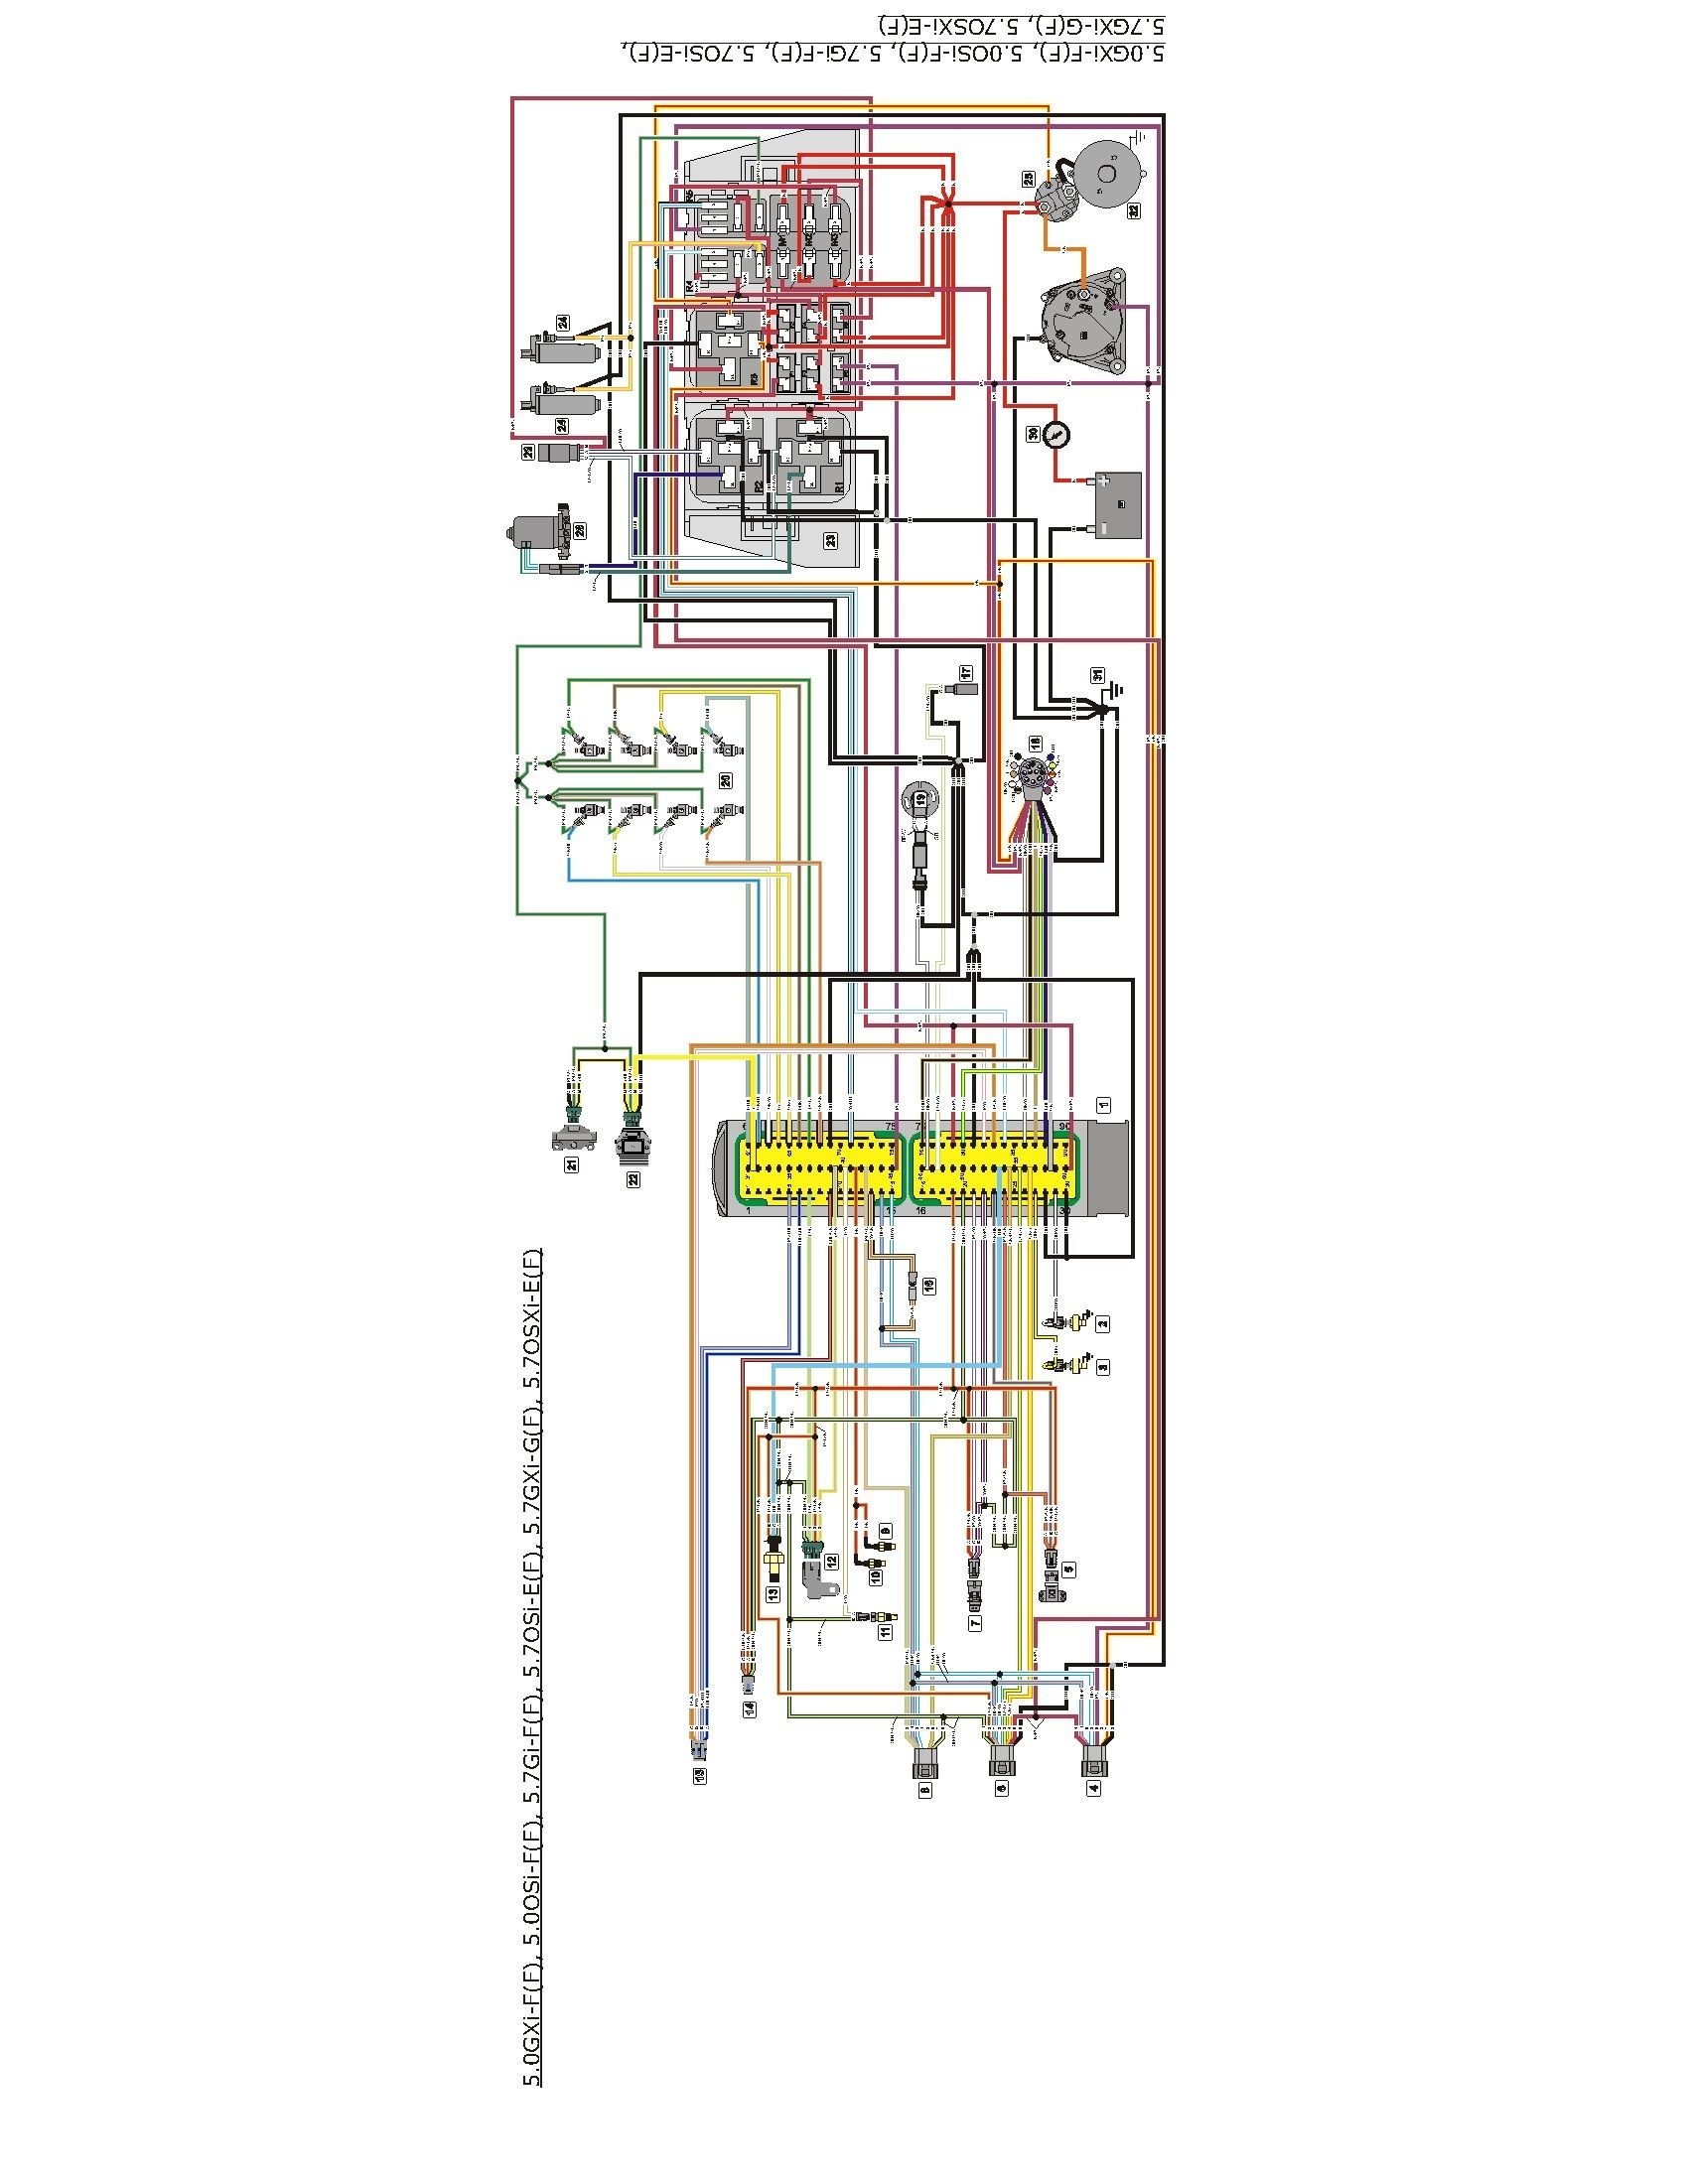 mercruiser 4 3 alternator wiring diagram 220v single phase transformer volvo penta library